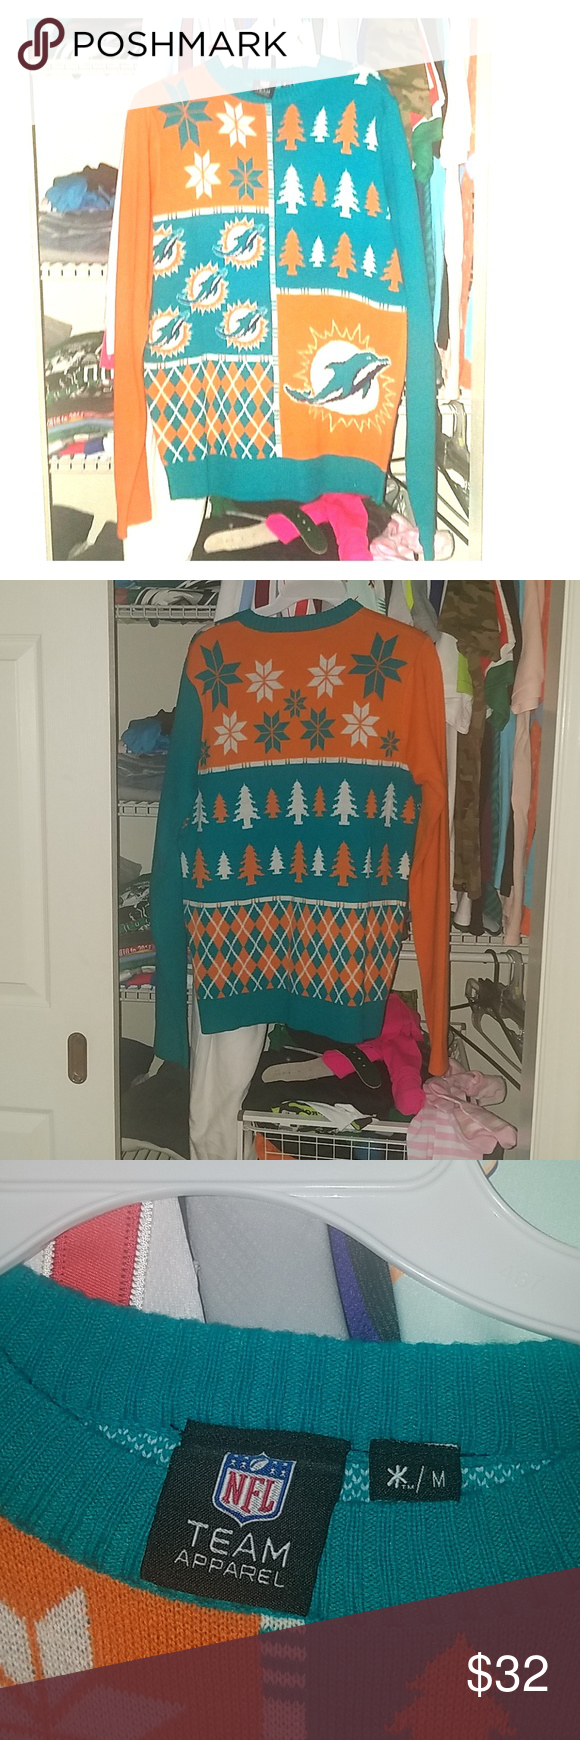 Miami Dolphins Ugly Sweater My Posh Closet Pinterest Sweaters